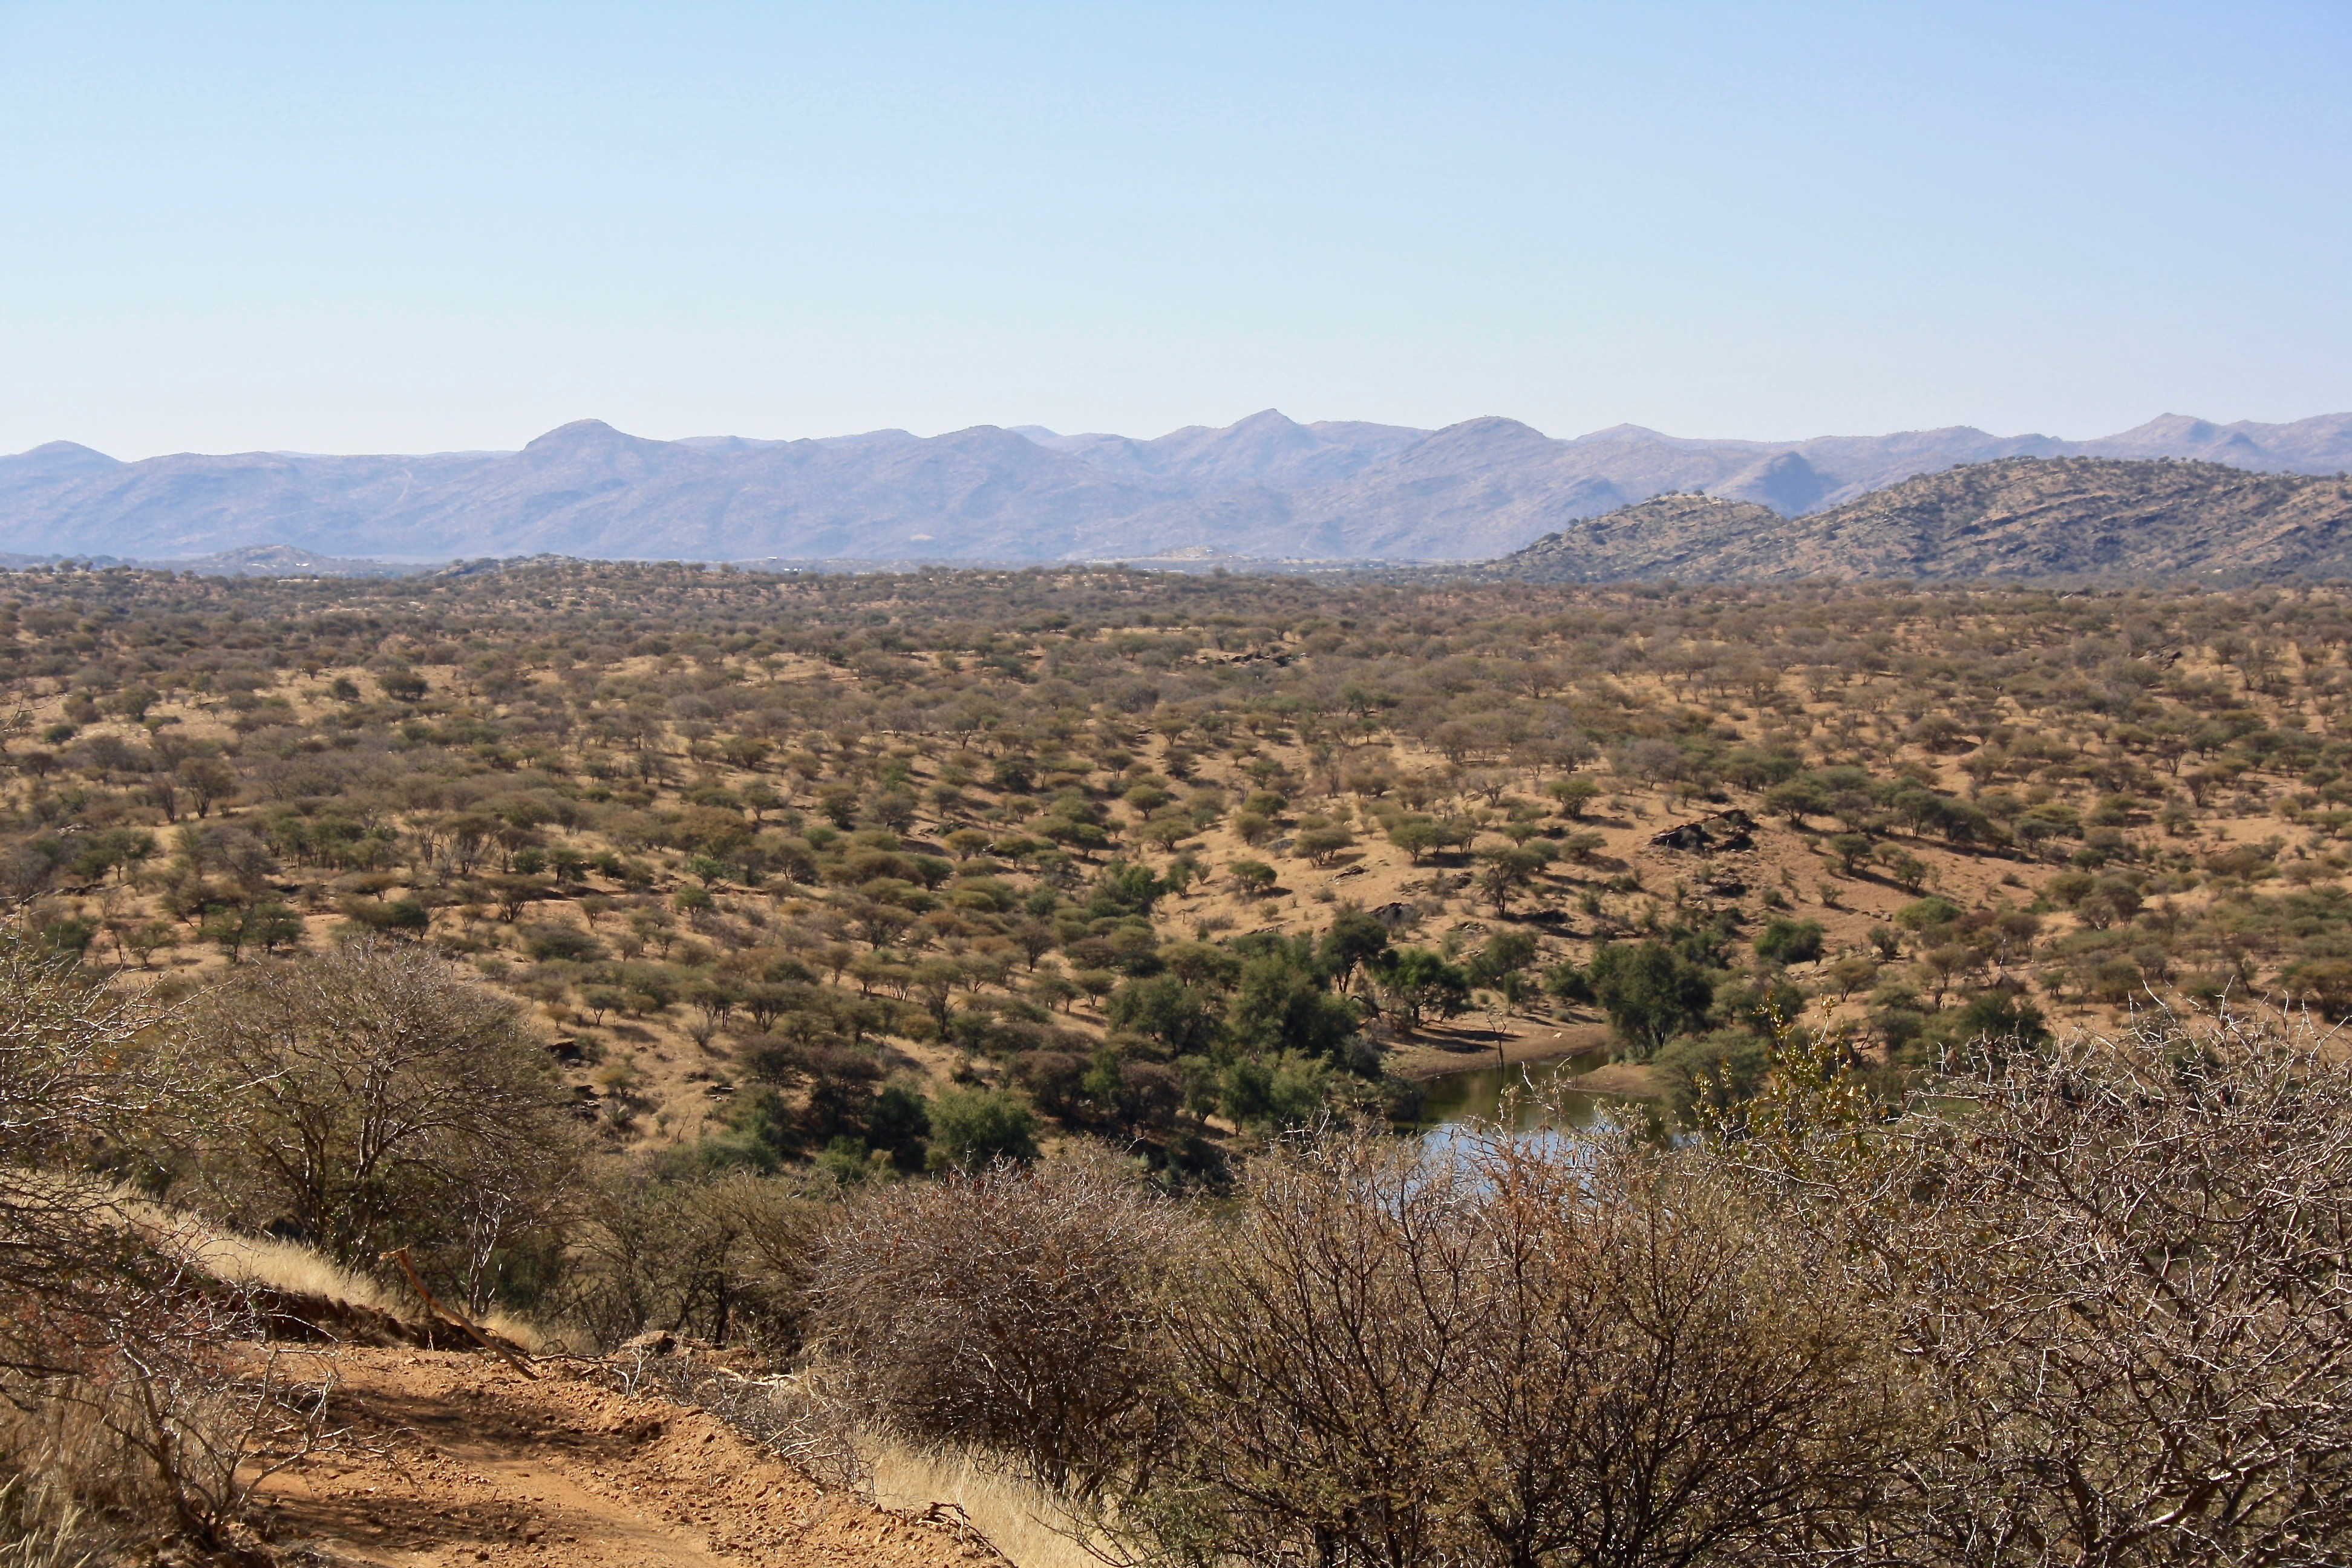 Ausblick, Namibia, Outback, Steppe, Damm